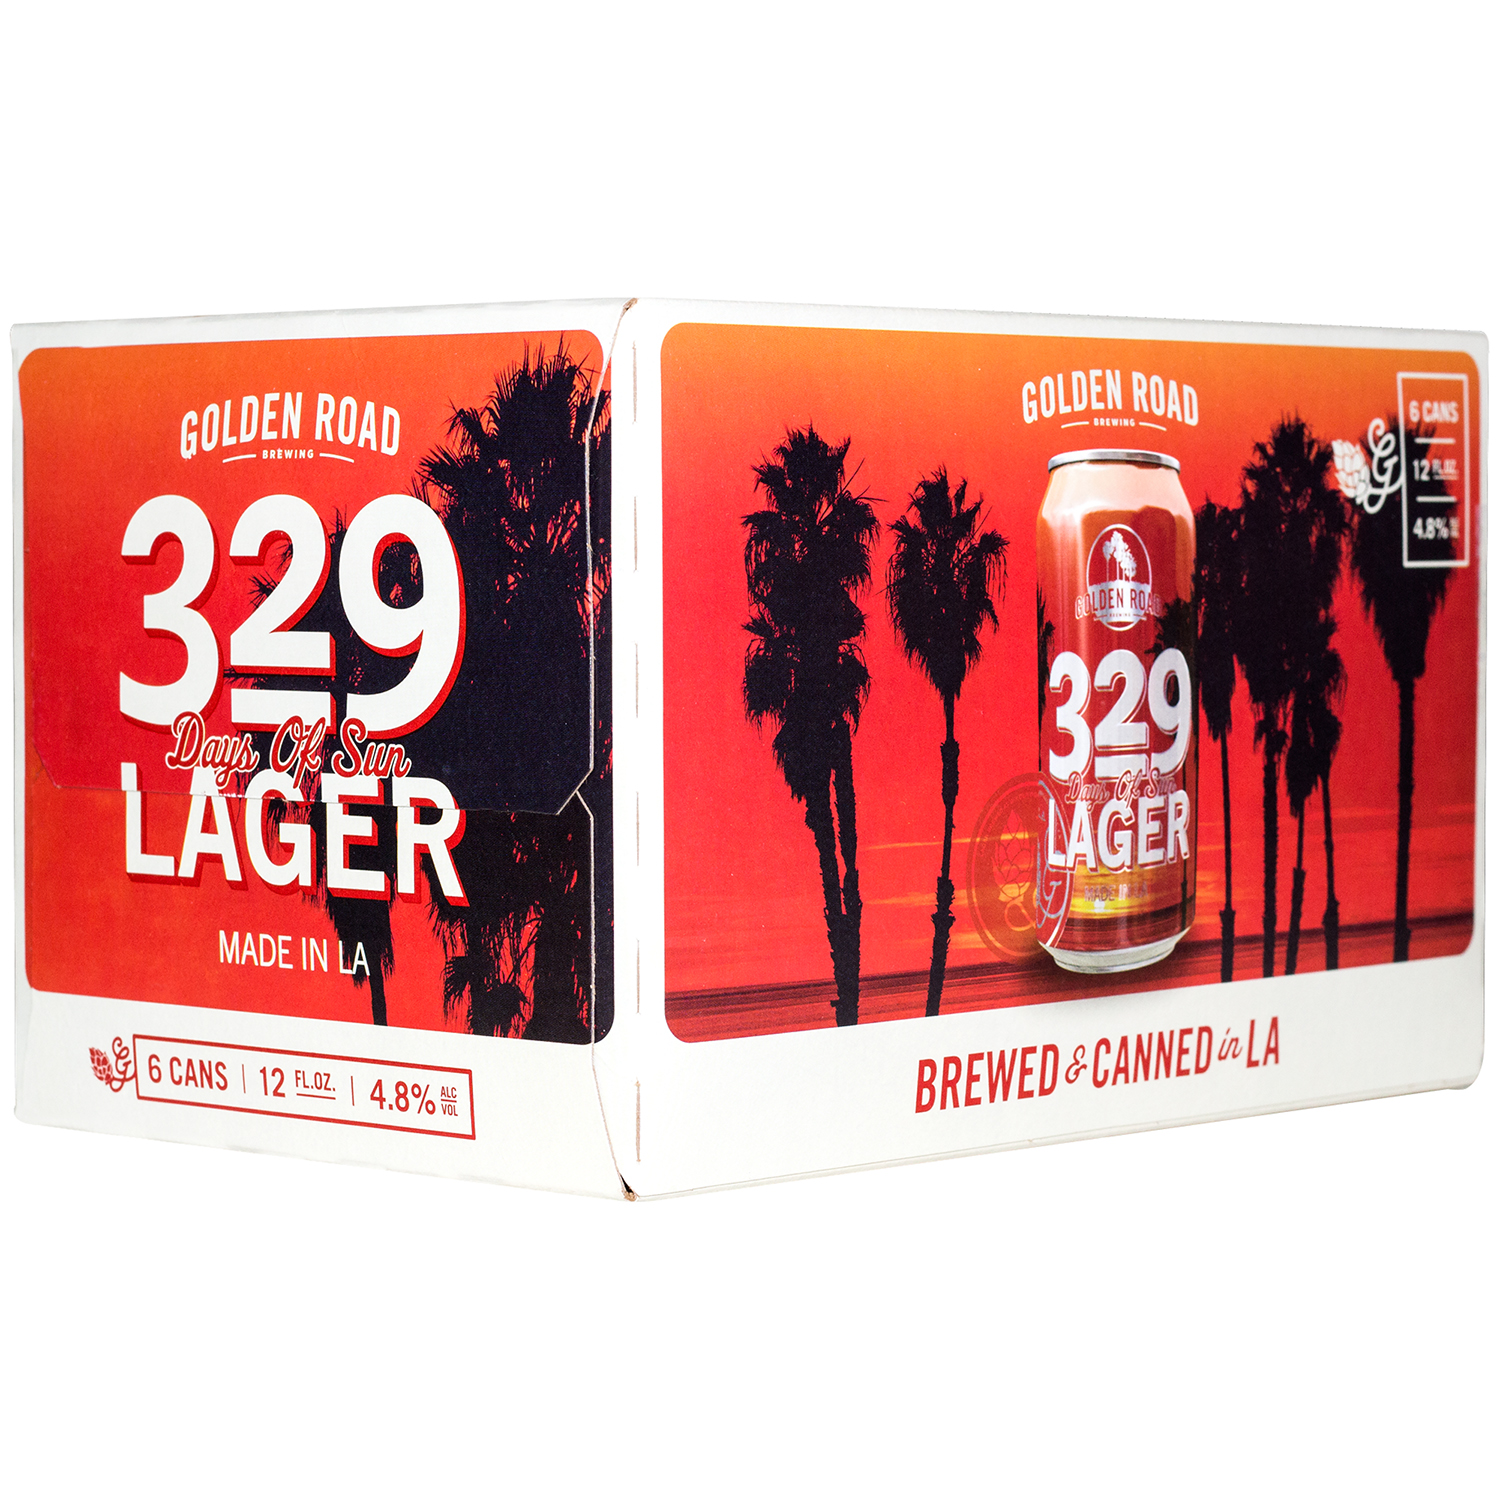 Image of Golden Road 329 Days of Sun Lager Beer, 6 pack, 12 fl oz